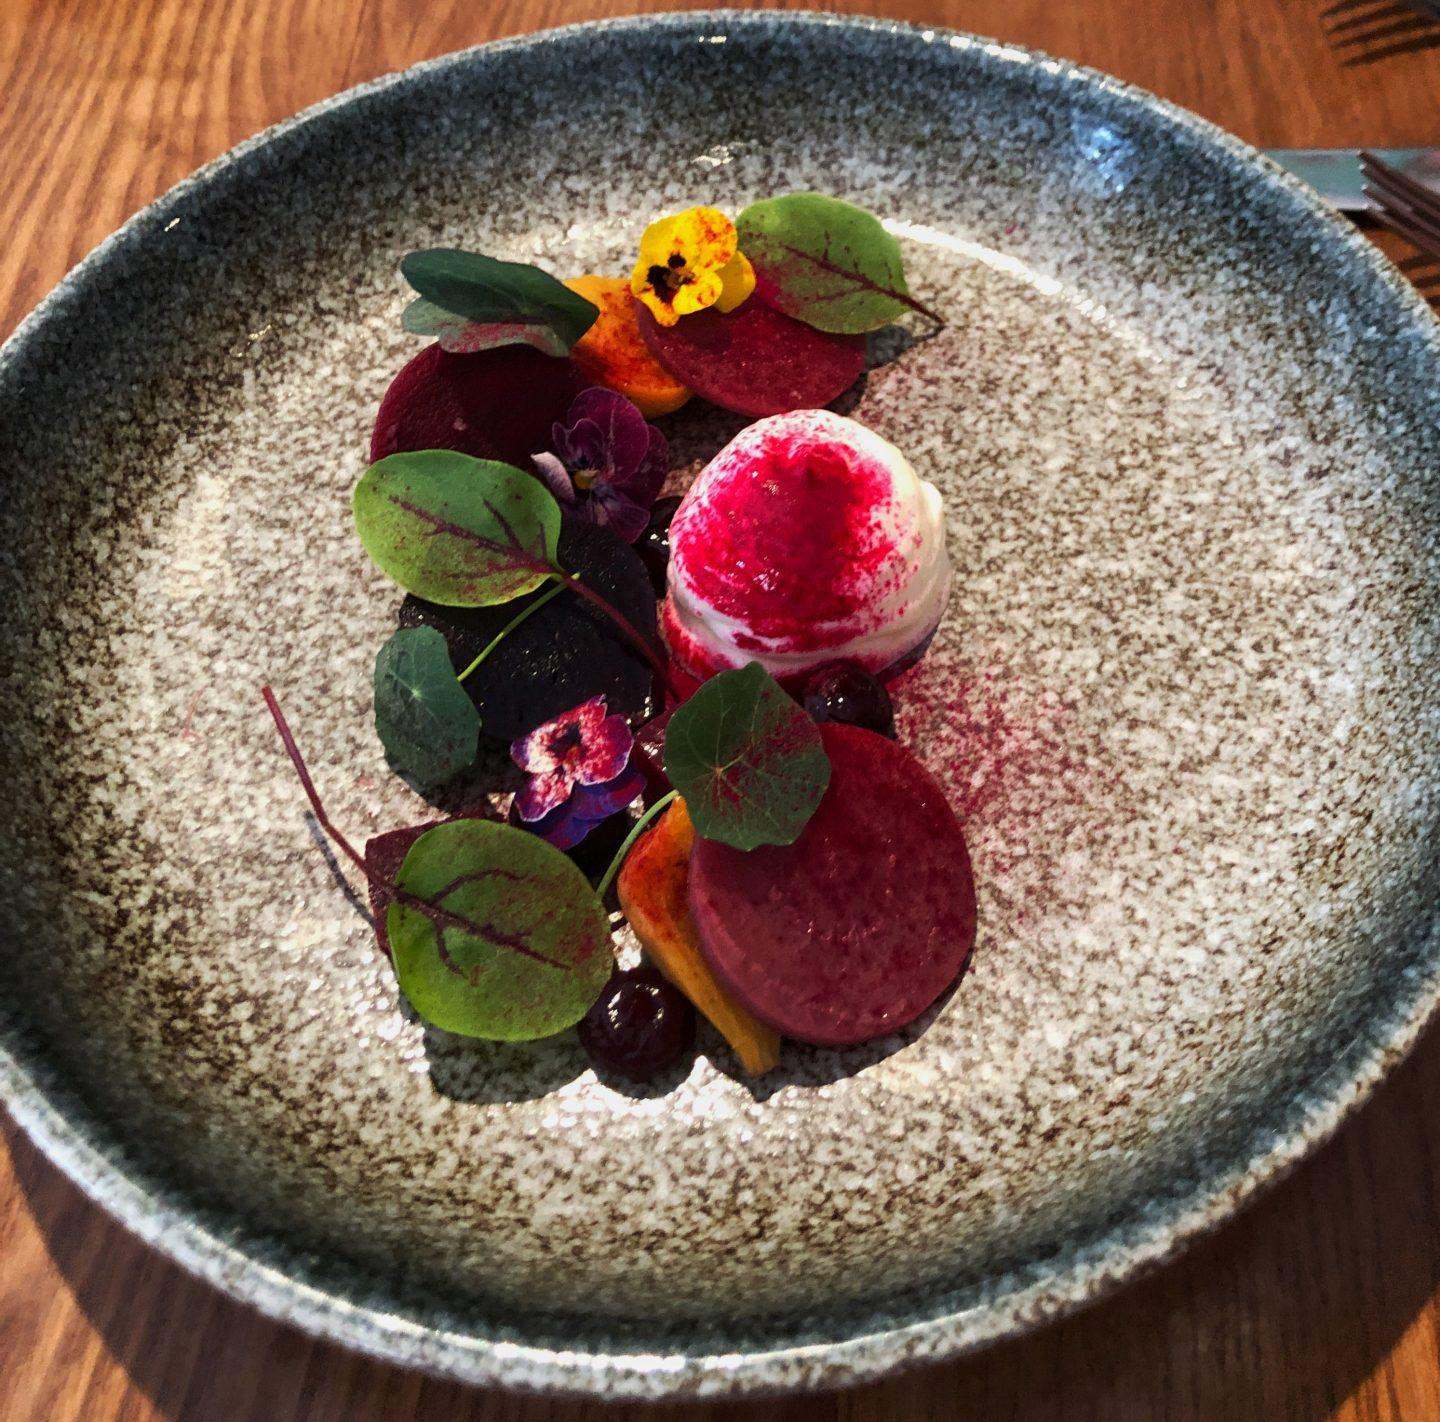 A delicious beetroot and goat's cheese started prepared by chef Marc Payne at our seven course taster menu at The Curious Kitchen at Aztec Spa Hotel in Bristol.